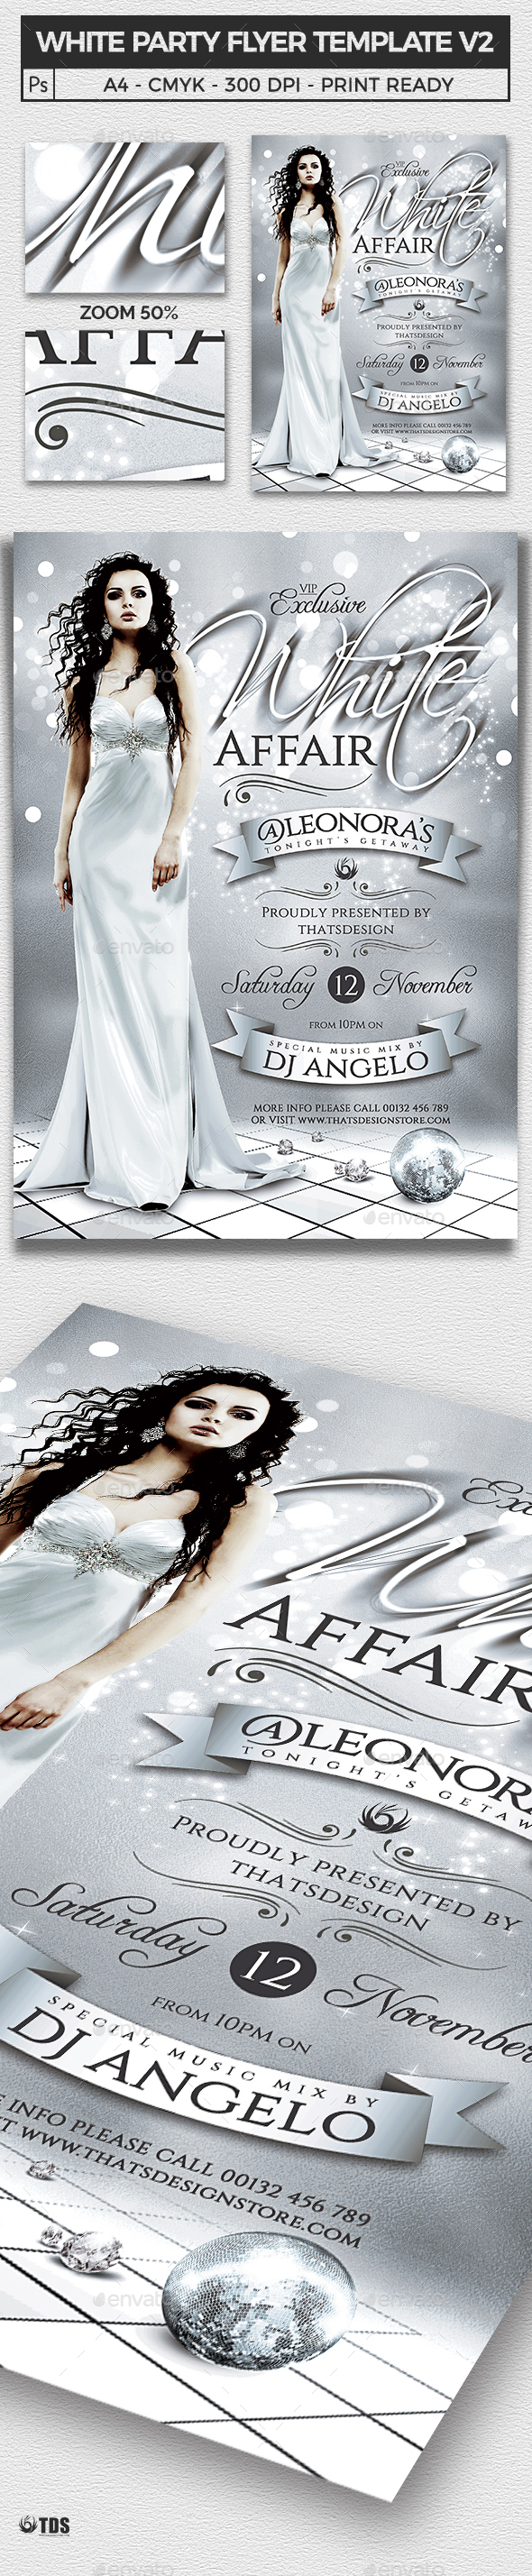 White Party Flyer Template V2 - Clubs & Parties Events